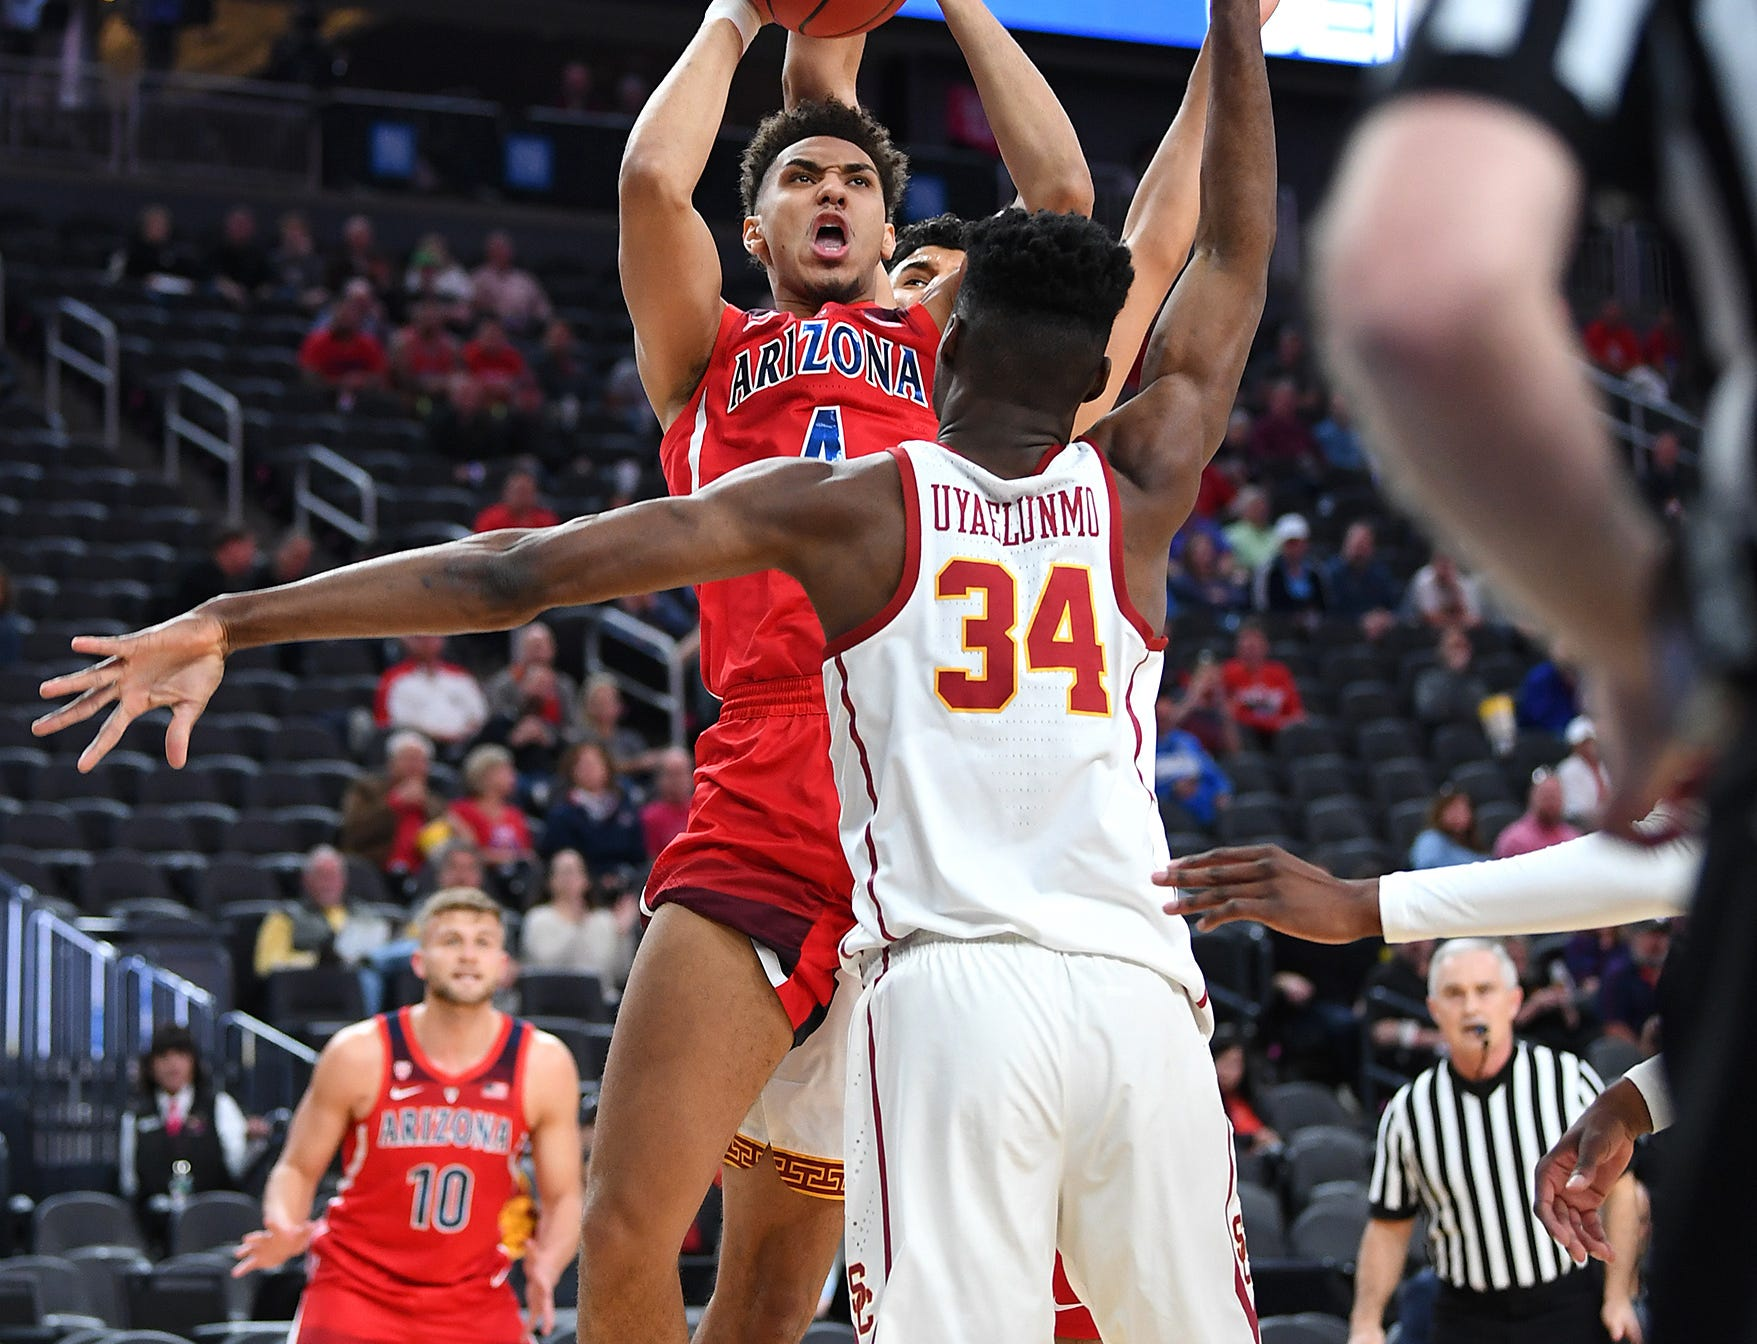 Mar 13, 2019; Las Vegas, NV, United States; Arizona Wildcats center Chase Jeter (4) shoots against USC Trojans forward Victor Uyaelunmo (34) during the first half of a Pac-12 conference tournament game at T-Mobile Arena. Mandatory Credit: Stephen R. Sylvanie-USA TODAY Sports